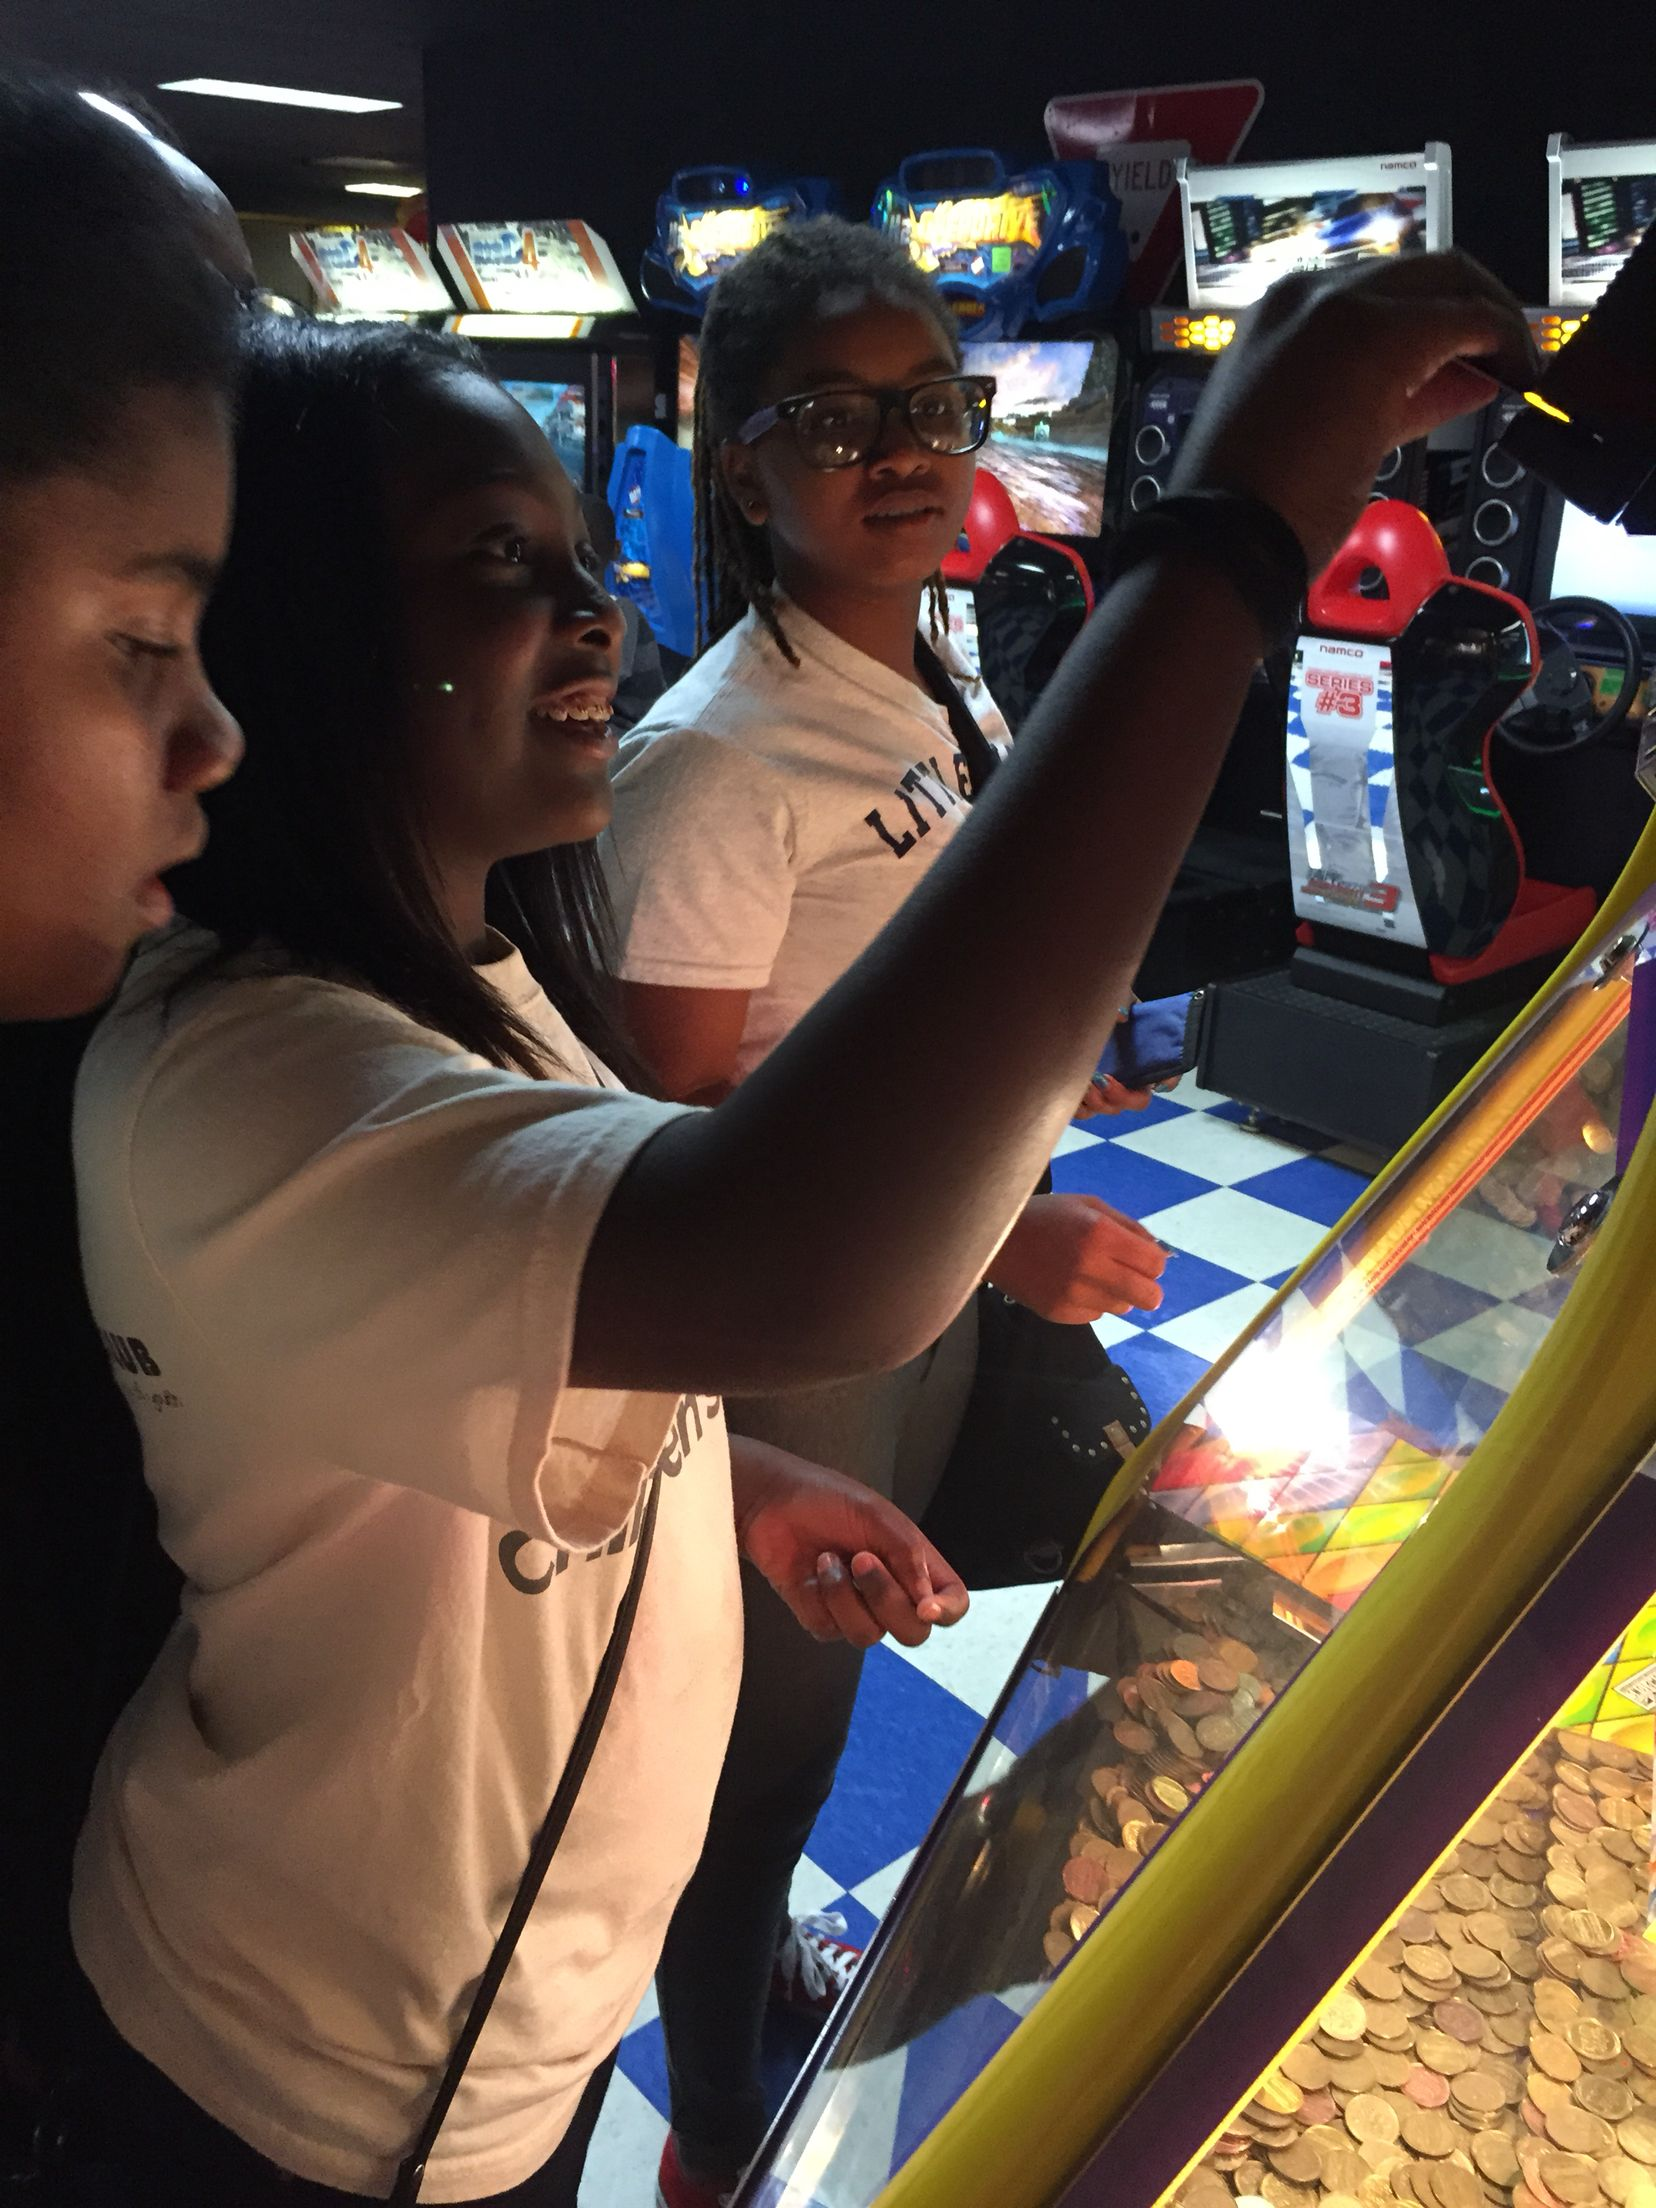 Show me the money! Gaming at the arcade After school